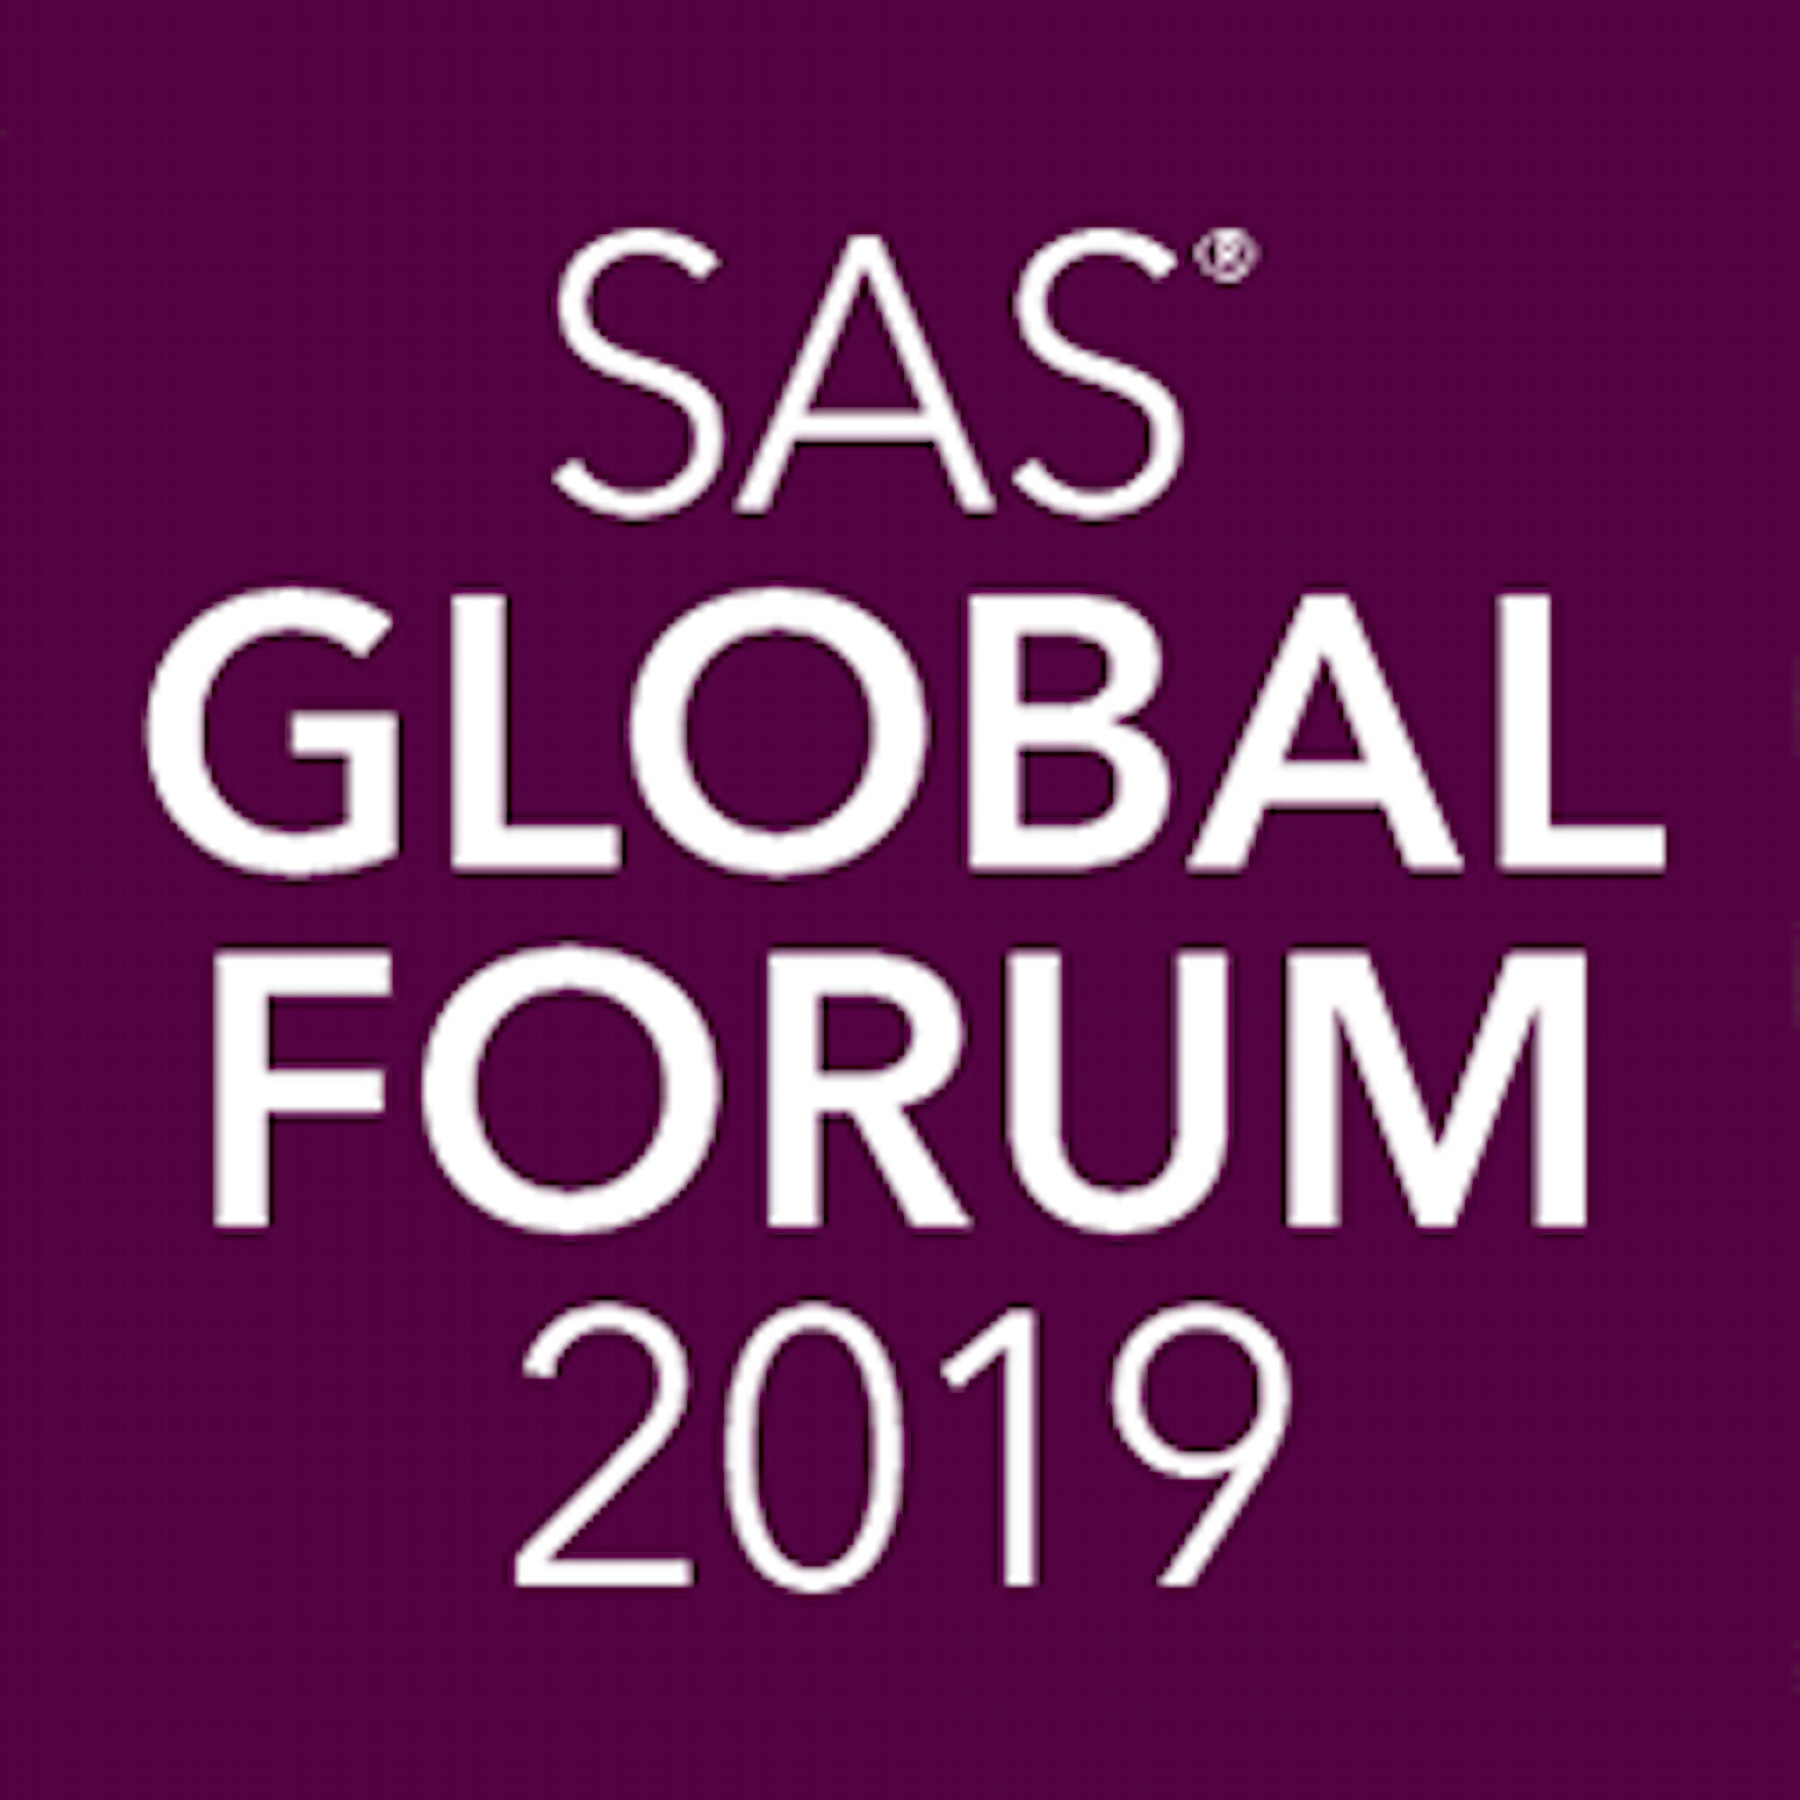 SAS Global Forum 2019 Logo